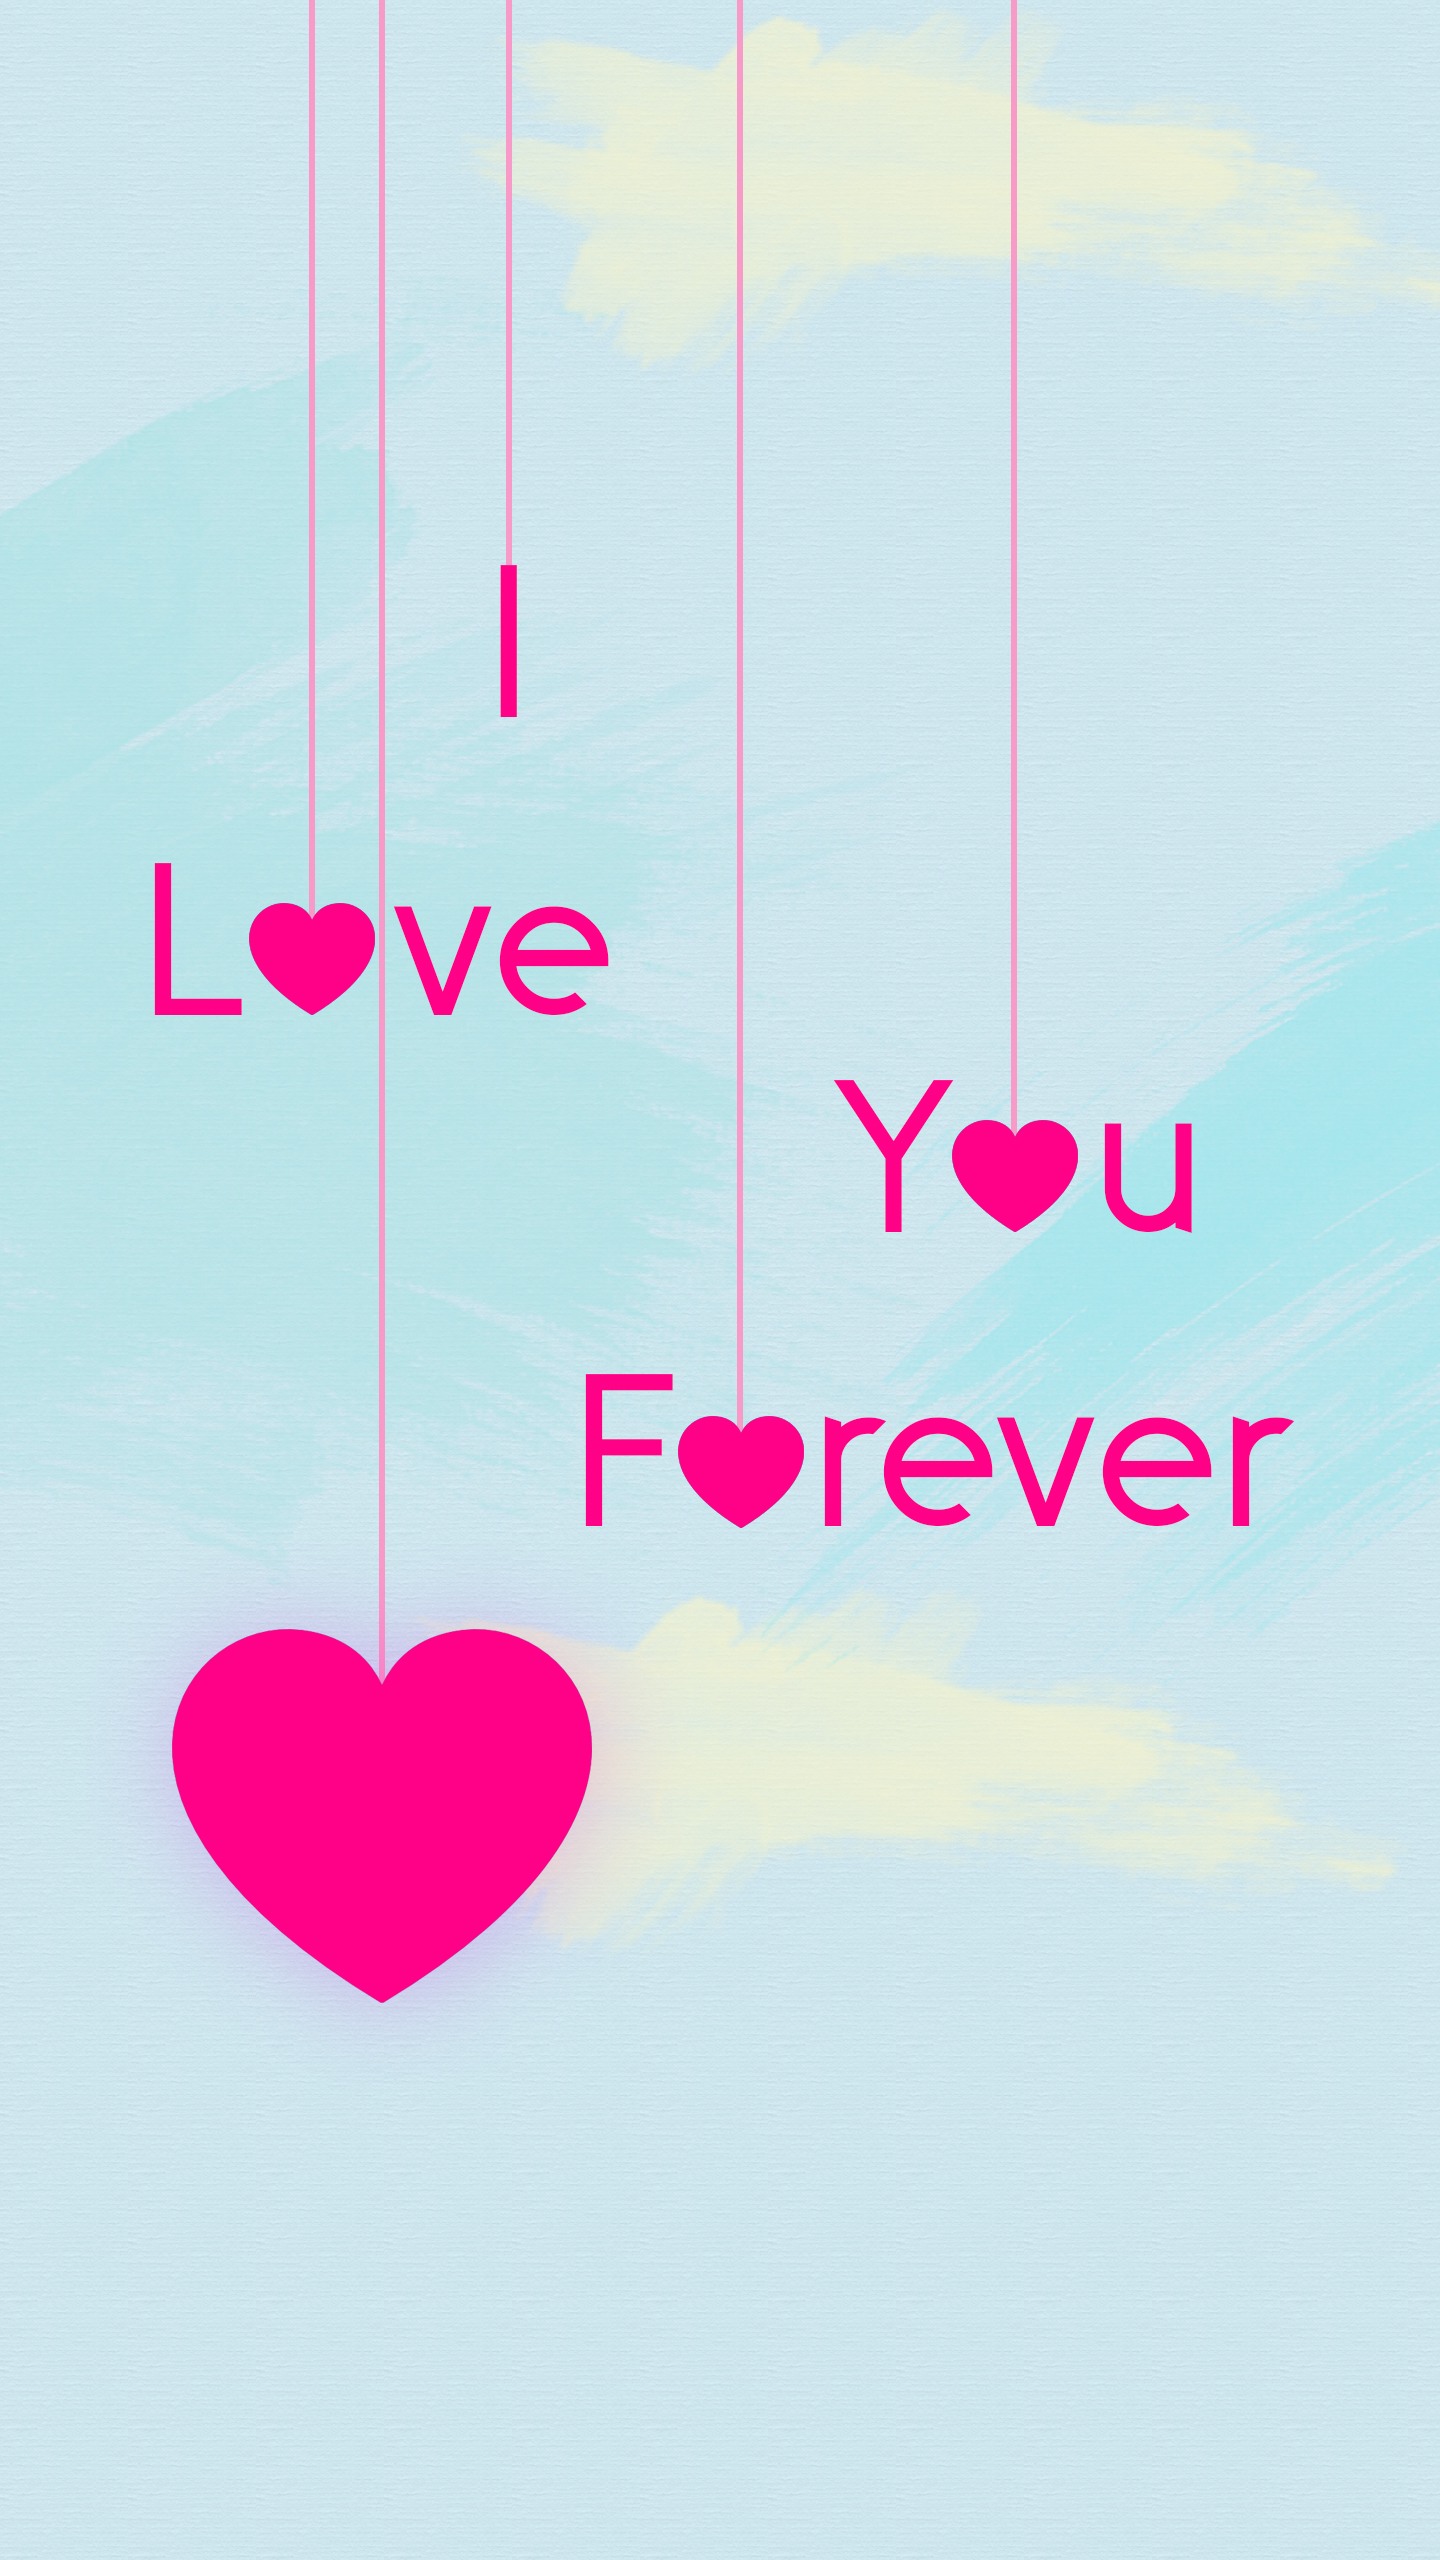 Wallpaper Love U Forever : I Love You Forever Wallpapers Galaxy by Mattiebonez on DeviantArt